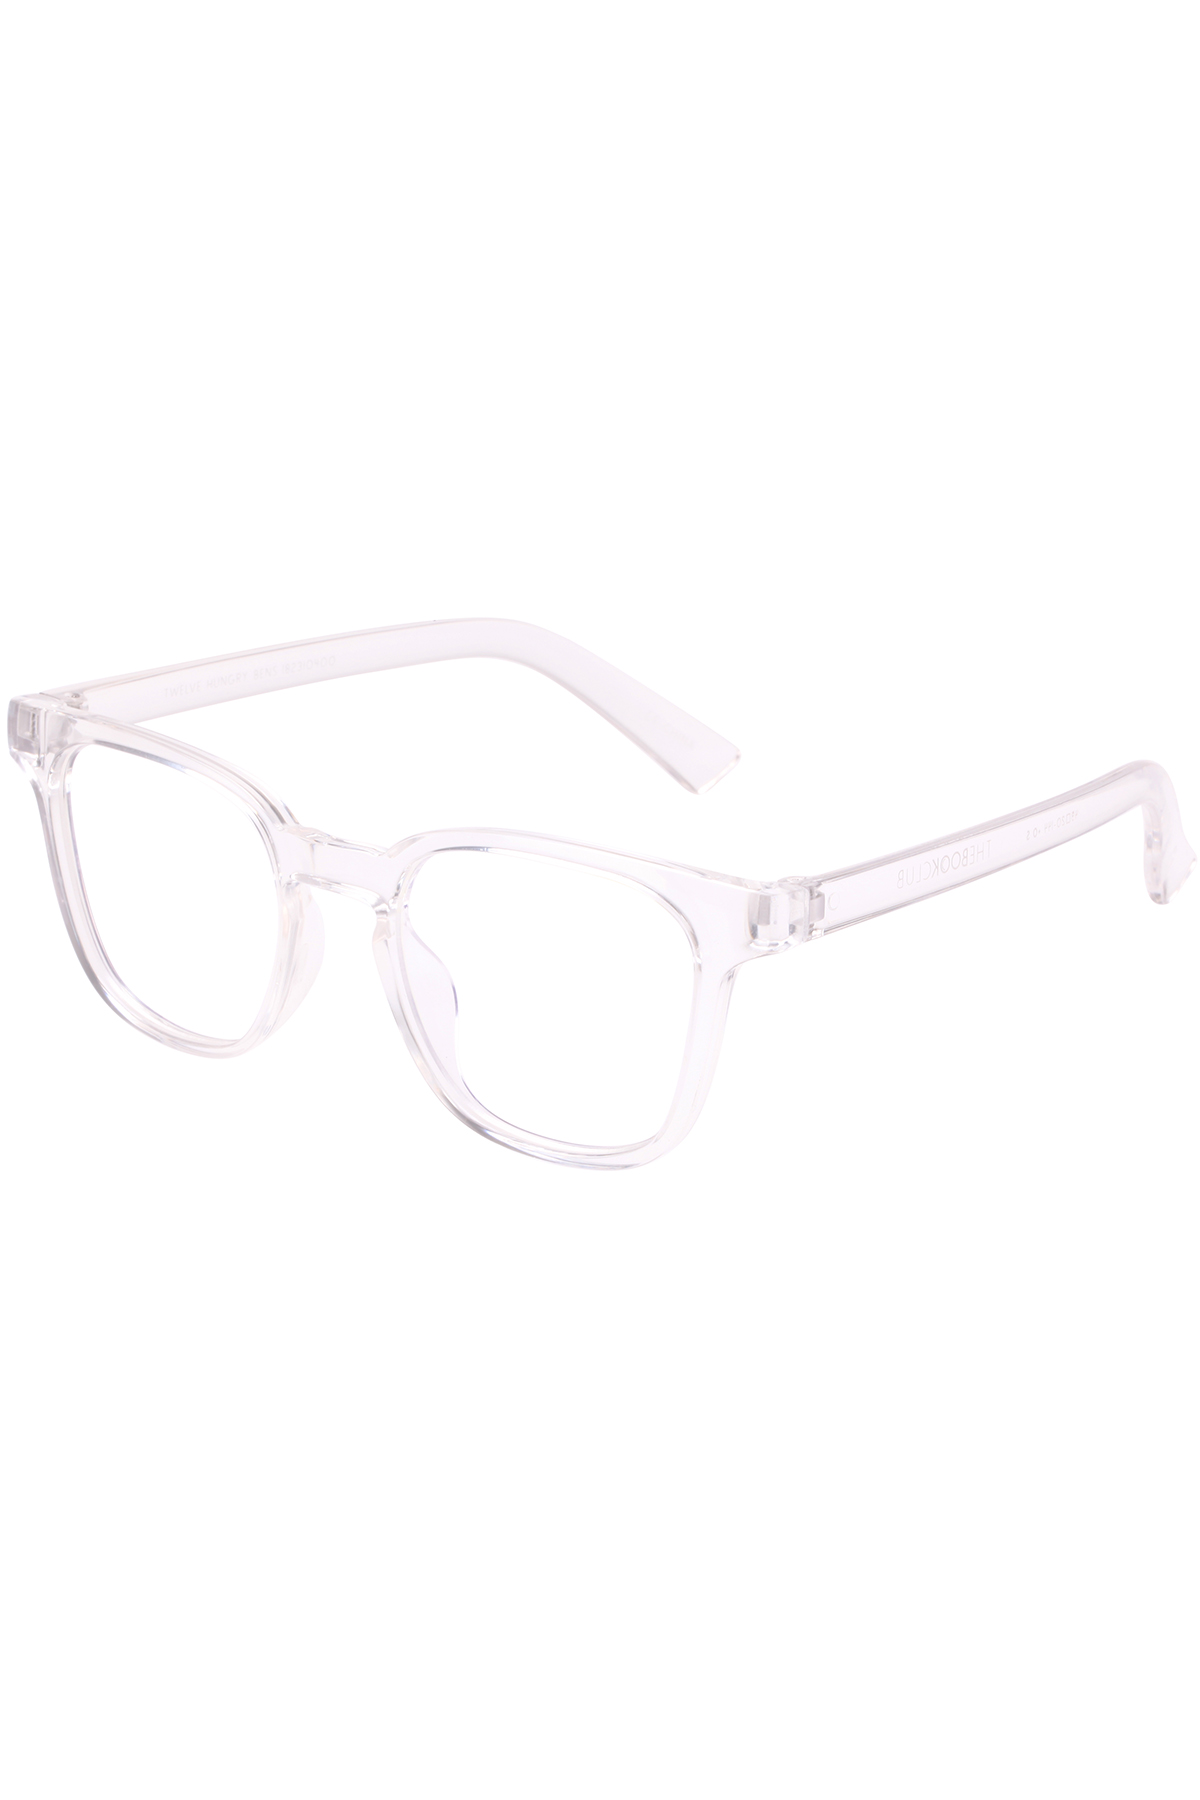 Twelve Hungry Bens Reading Glasses (+1.5 Strength) - Cellophane 1